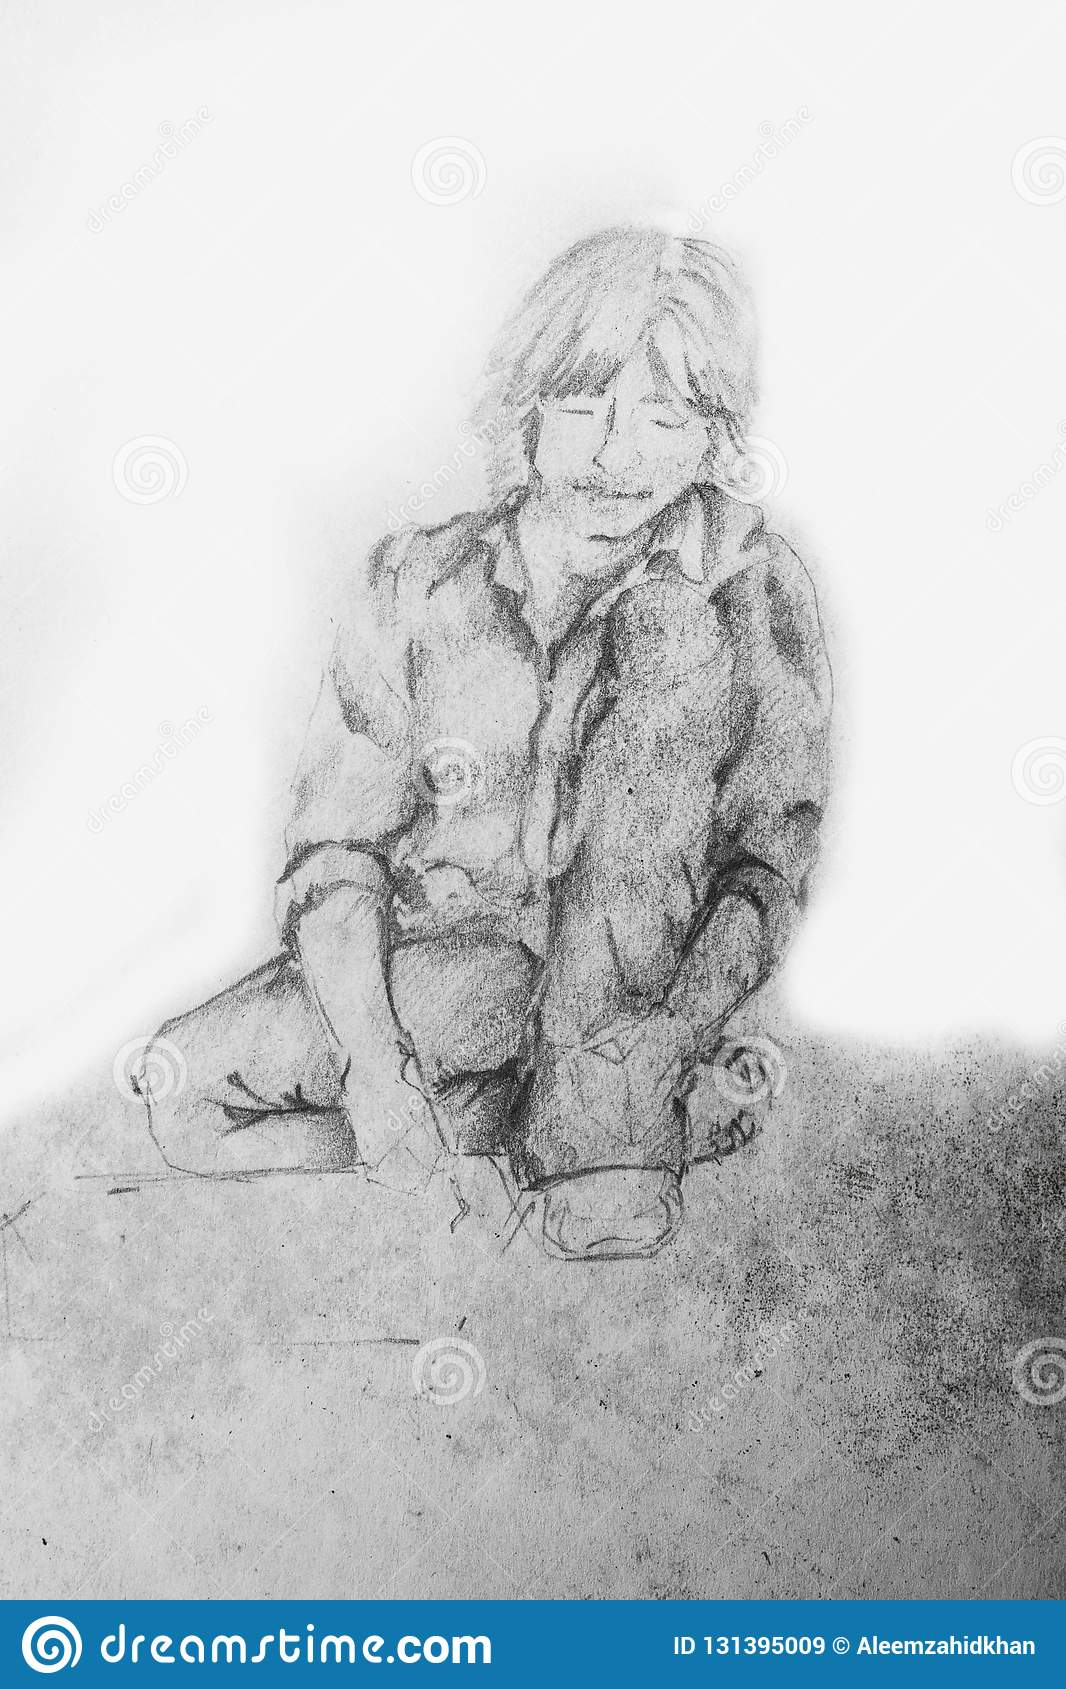 Student boy sitting and reading book on the ground pencil sketch